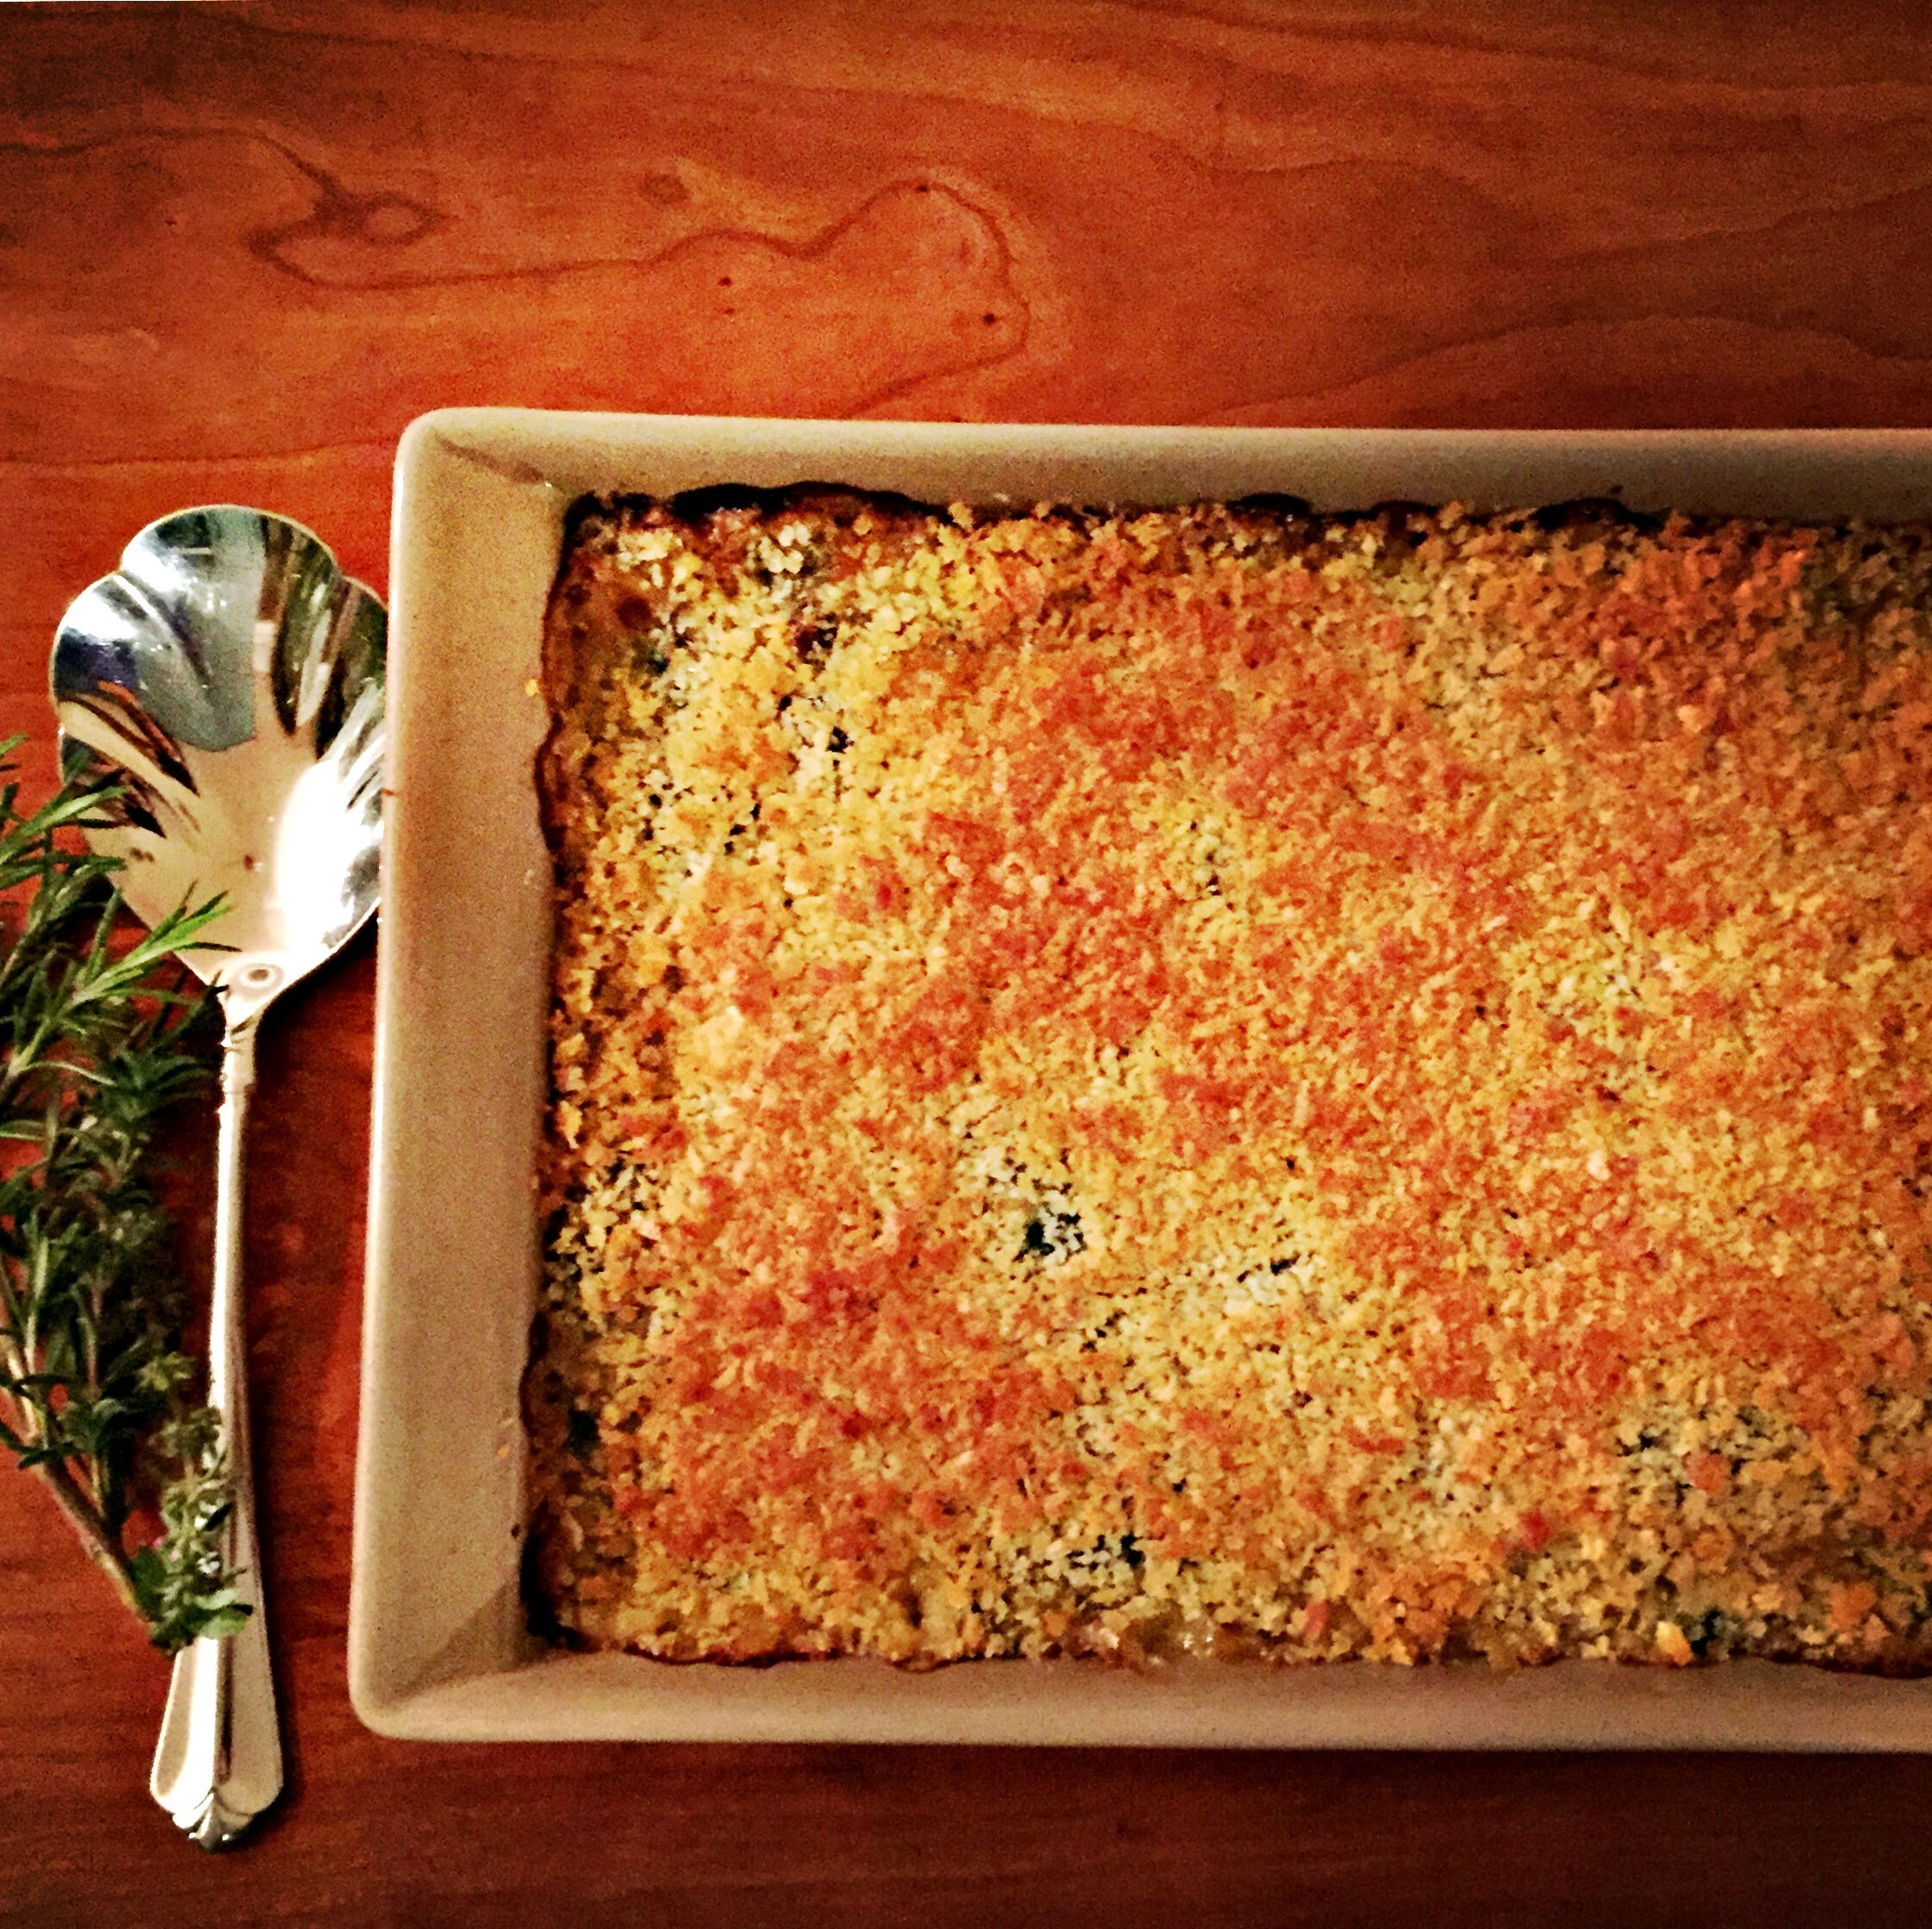 Make-ahead gratin adds some nutrition to Thanksgiving comfort fare